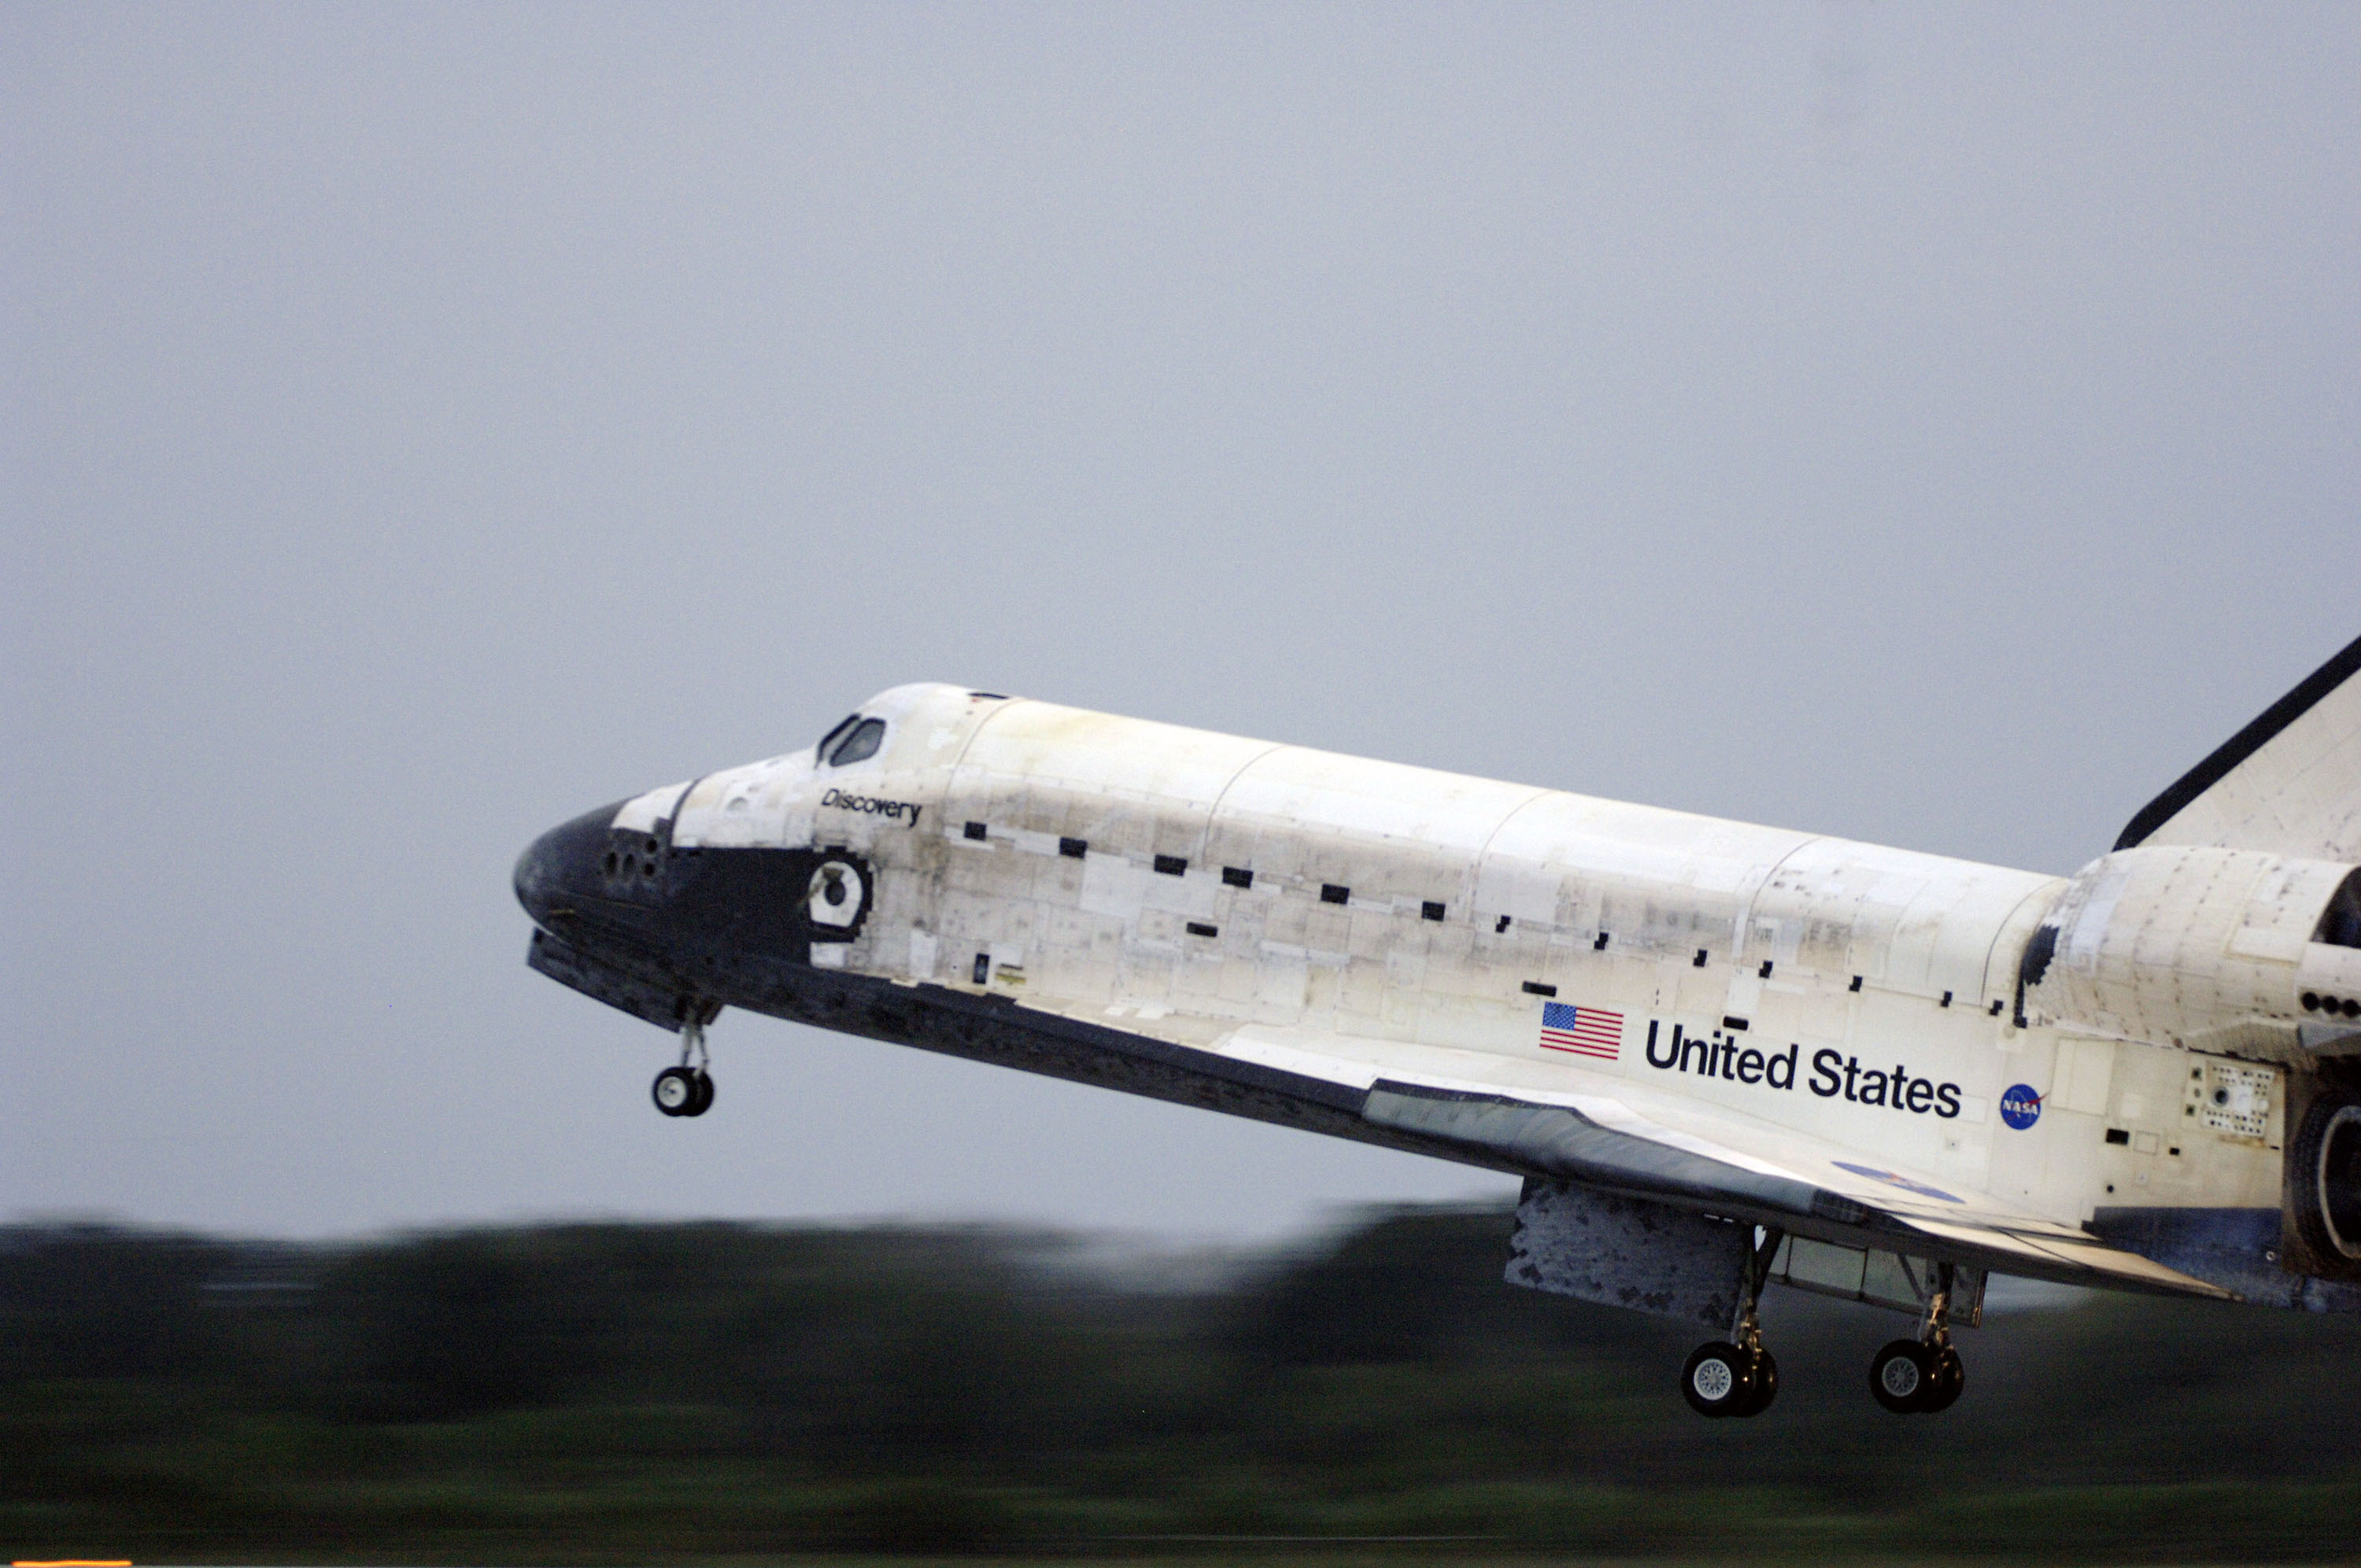 Space Shuttle Discovery Landing - Pics about space